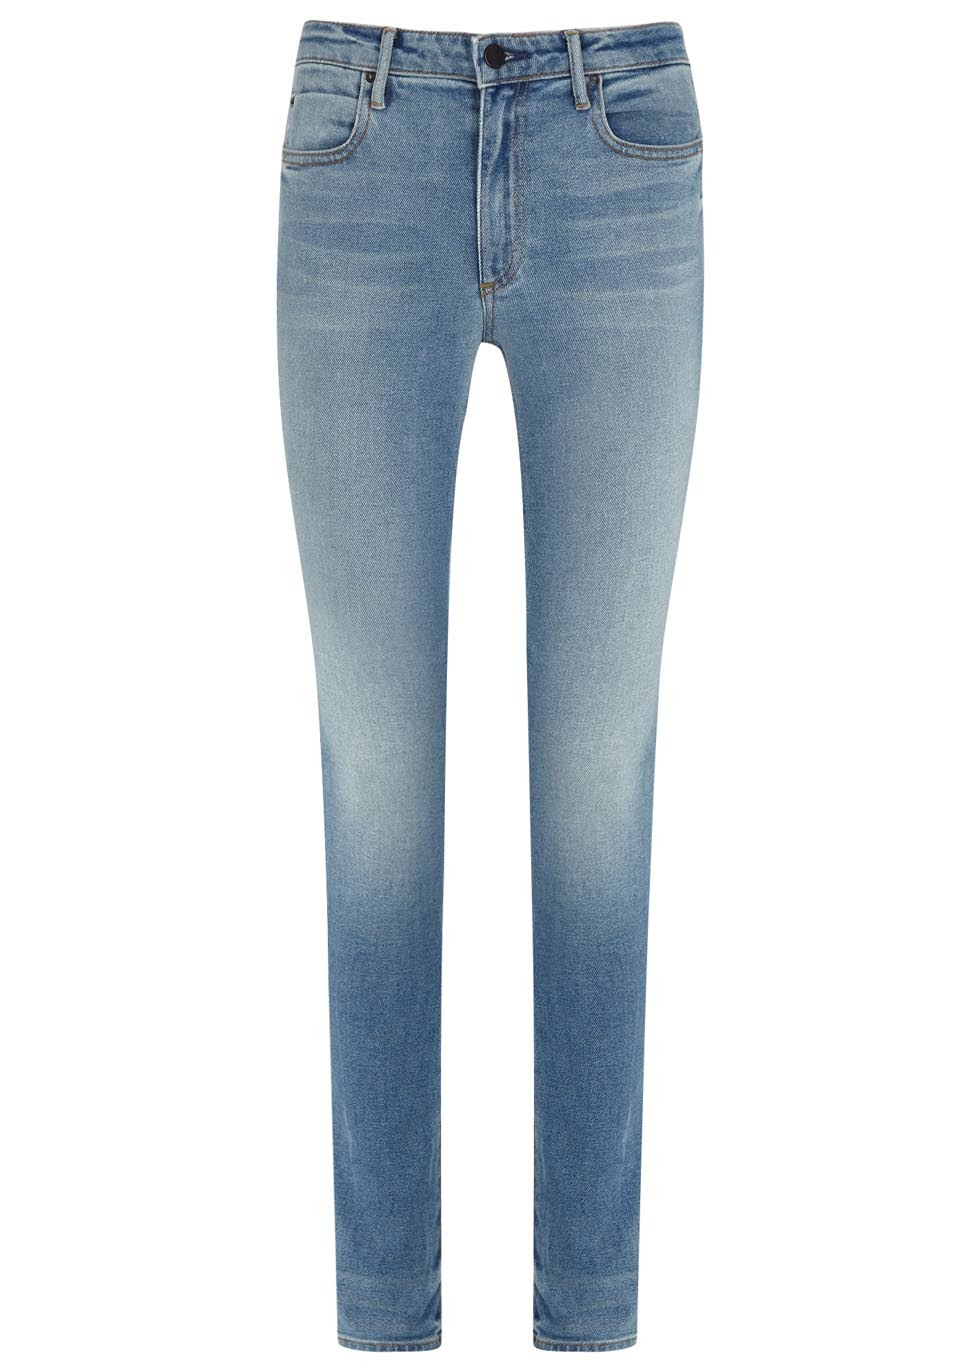 Light Blue Slim Leg Jeans - length: standard; pattern: plain; waist: high rise; pocket detail: traditional 5 pocket; style: slim leg; predominant colour: denim; occasions: casual; fibres: cotton - stretch; jeans detail: whiskering, shading down centre of thigh; texture group: denim; pattern type: fabric; season: s/s 2015; wardrobe: basic